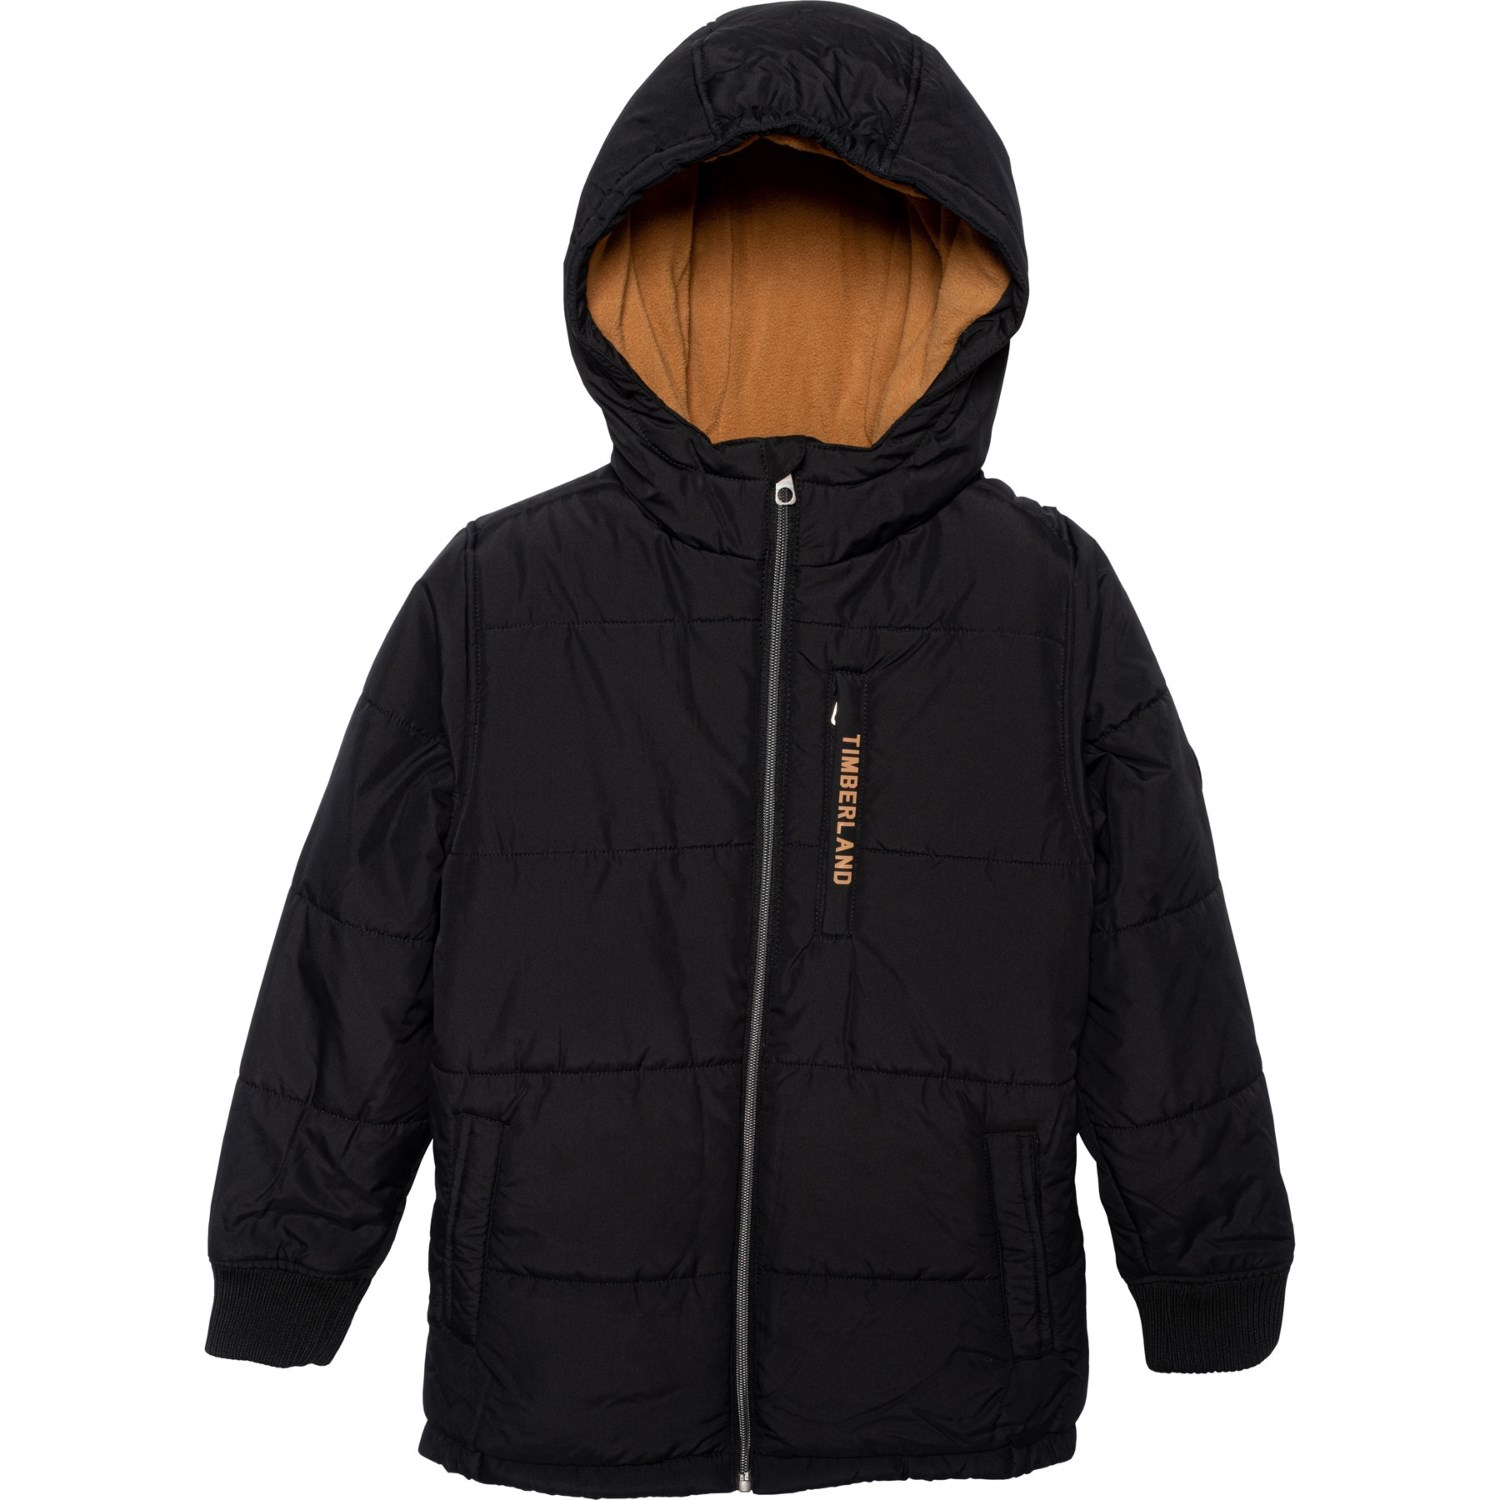 Timberland Saco Heavyweight Puffer Ski Jacket (For Big Boys